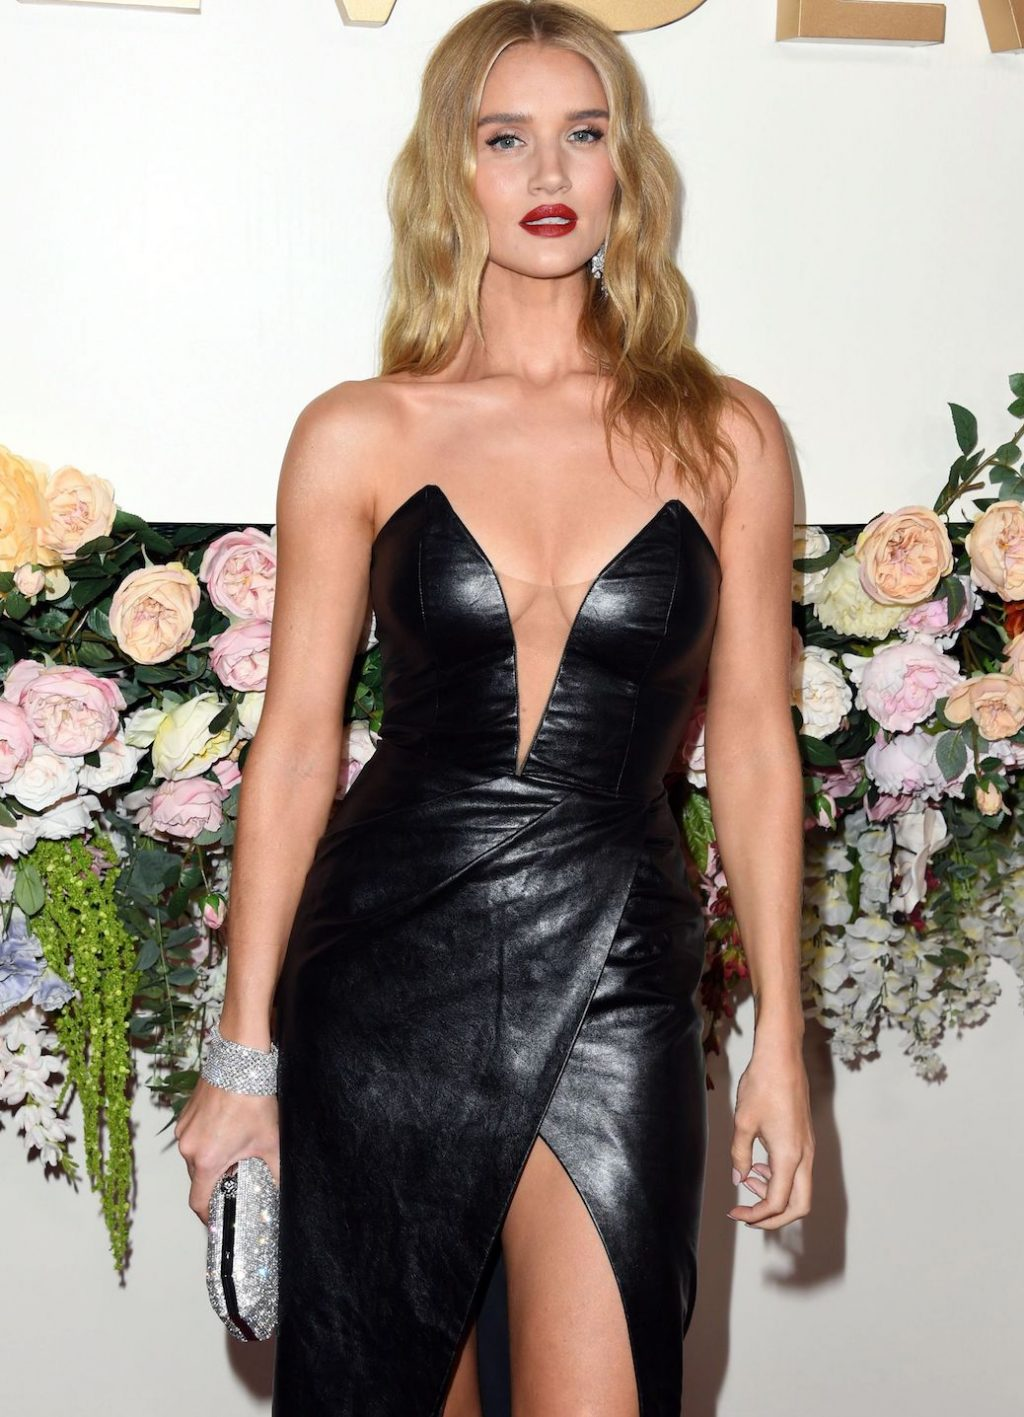 Is Rosie Huntington-Whiteley Getting Hotter by the Day?